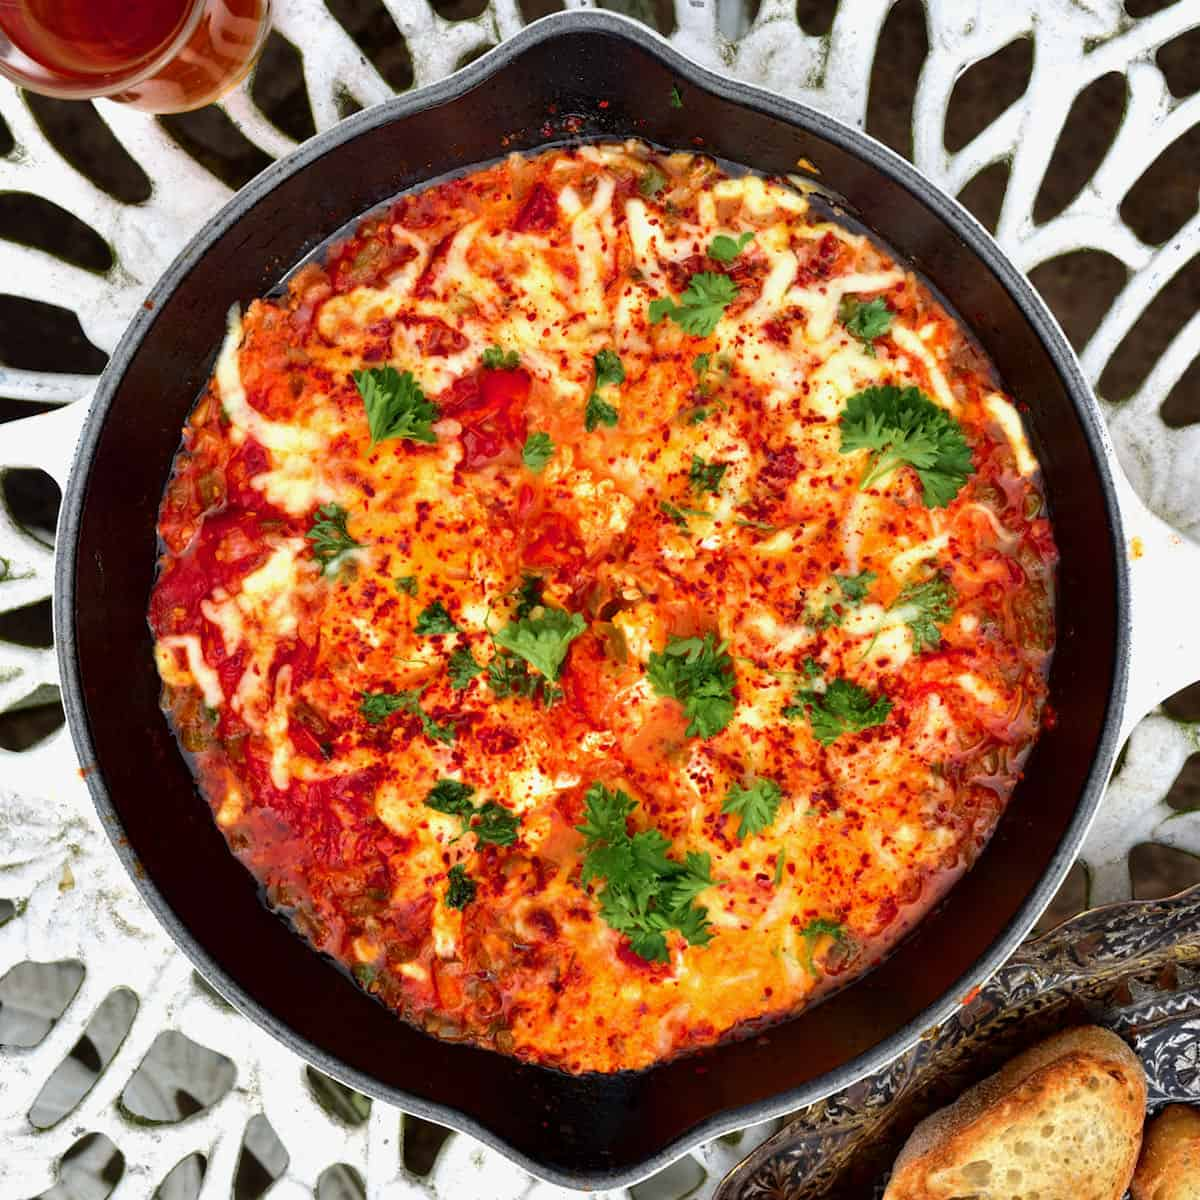 Menemen in a pan with bread and tea